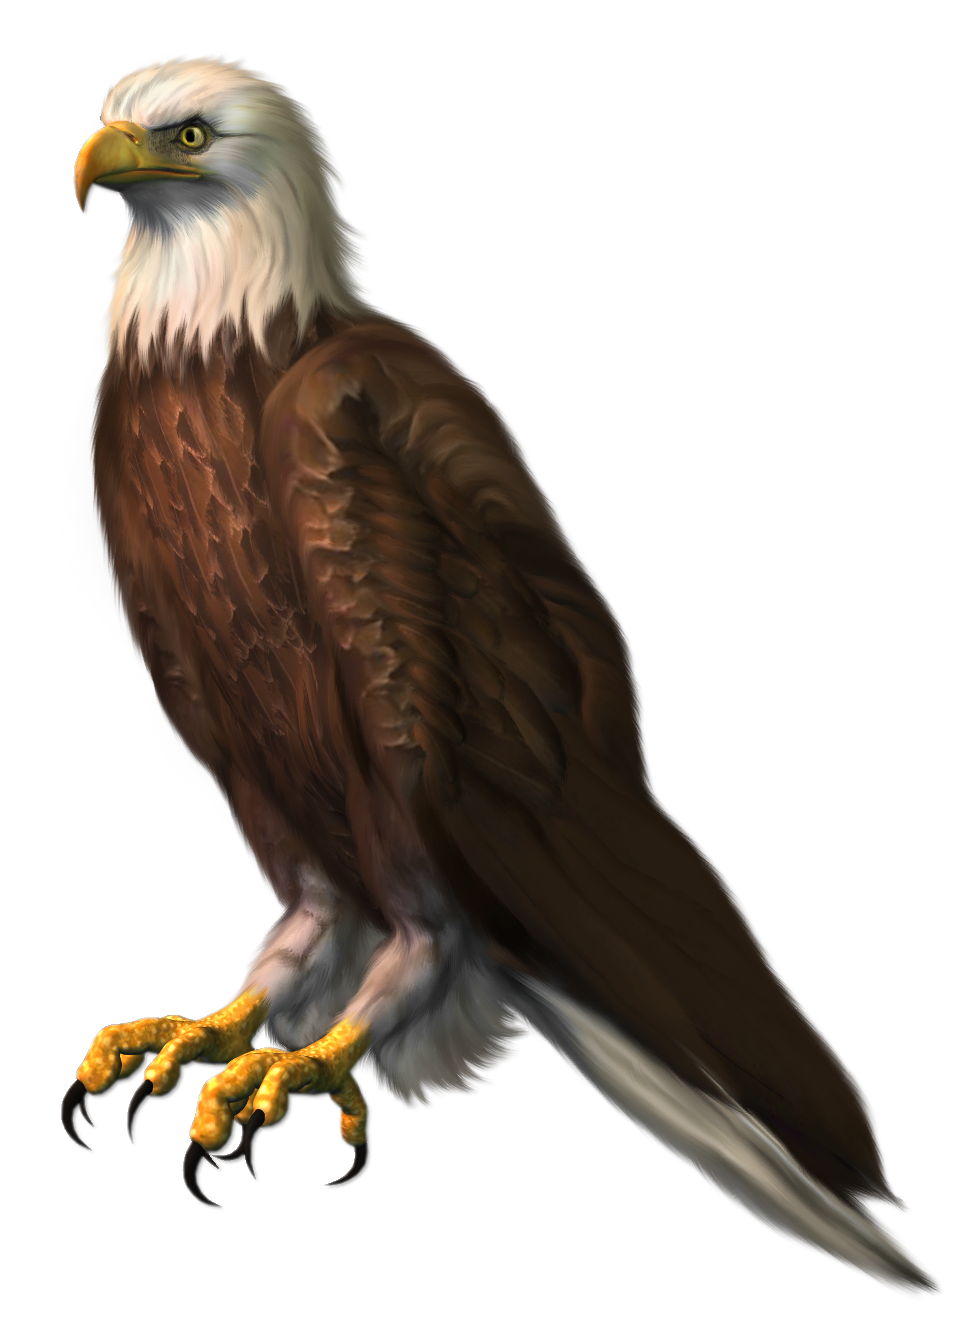 Free PNG Eagle.